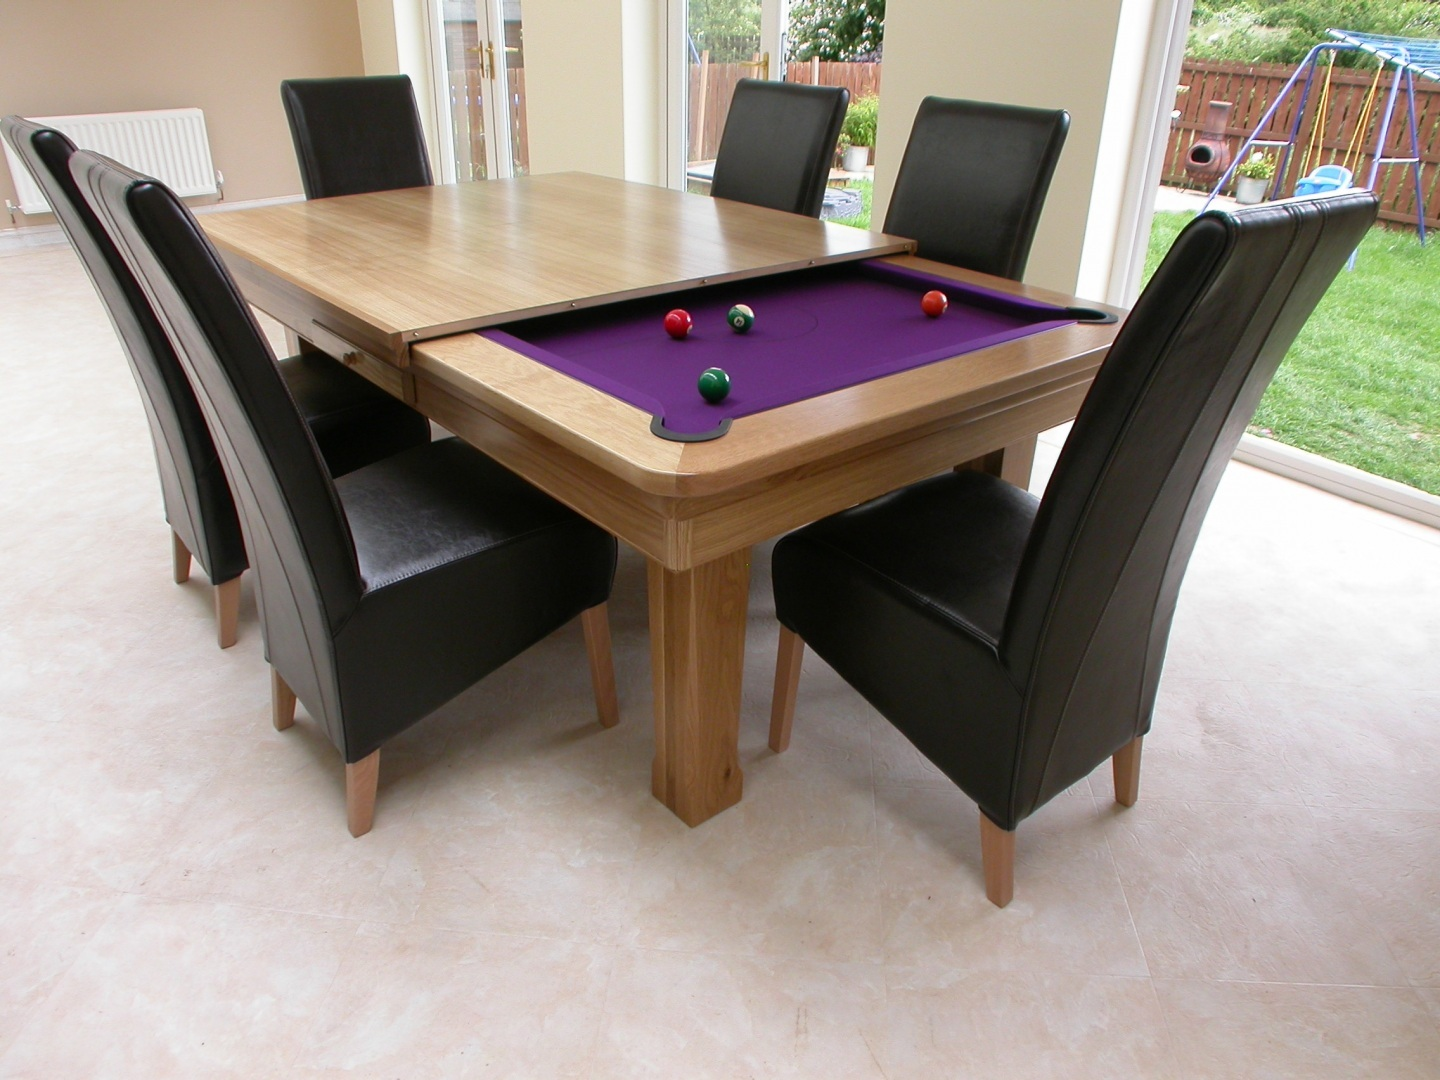 Poker dining table perth Online Casino : amazing dining billiards table from shandiz.ir size 1440 x 1080 jpeg 368kB